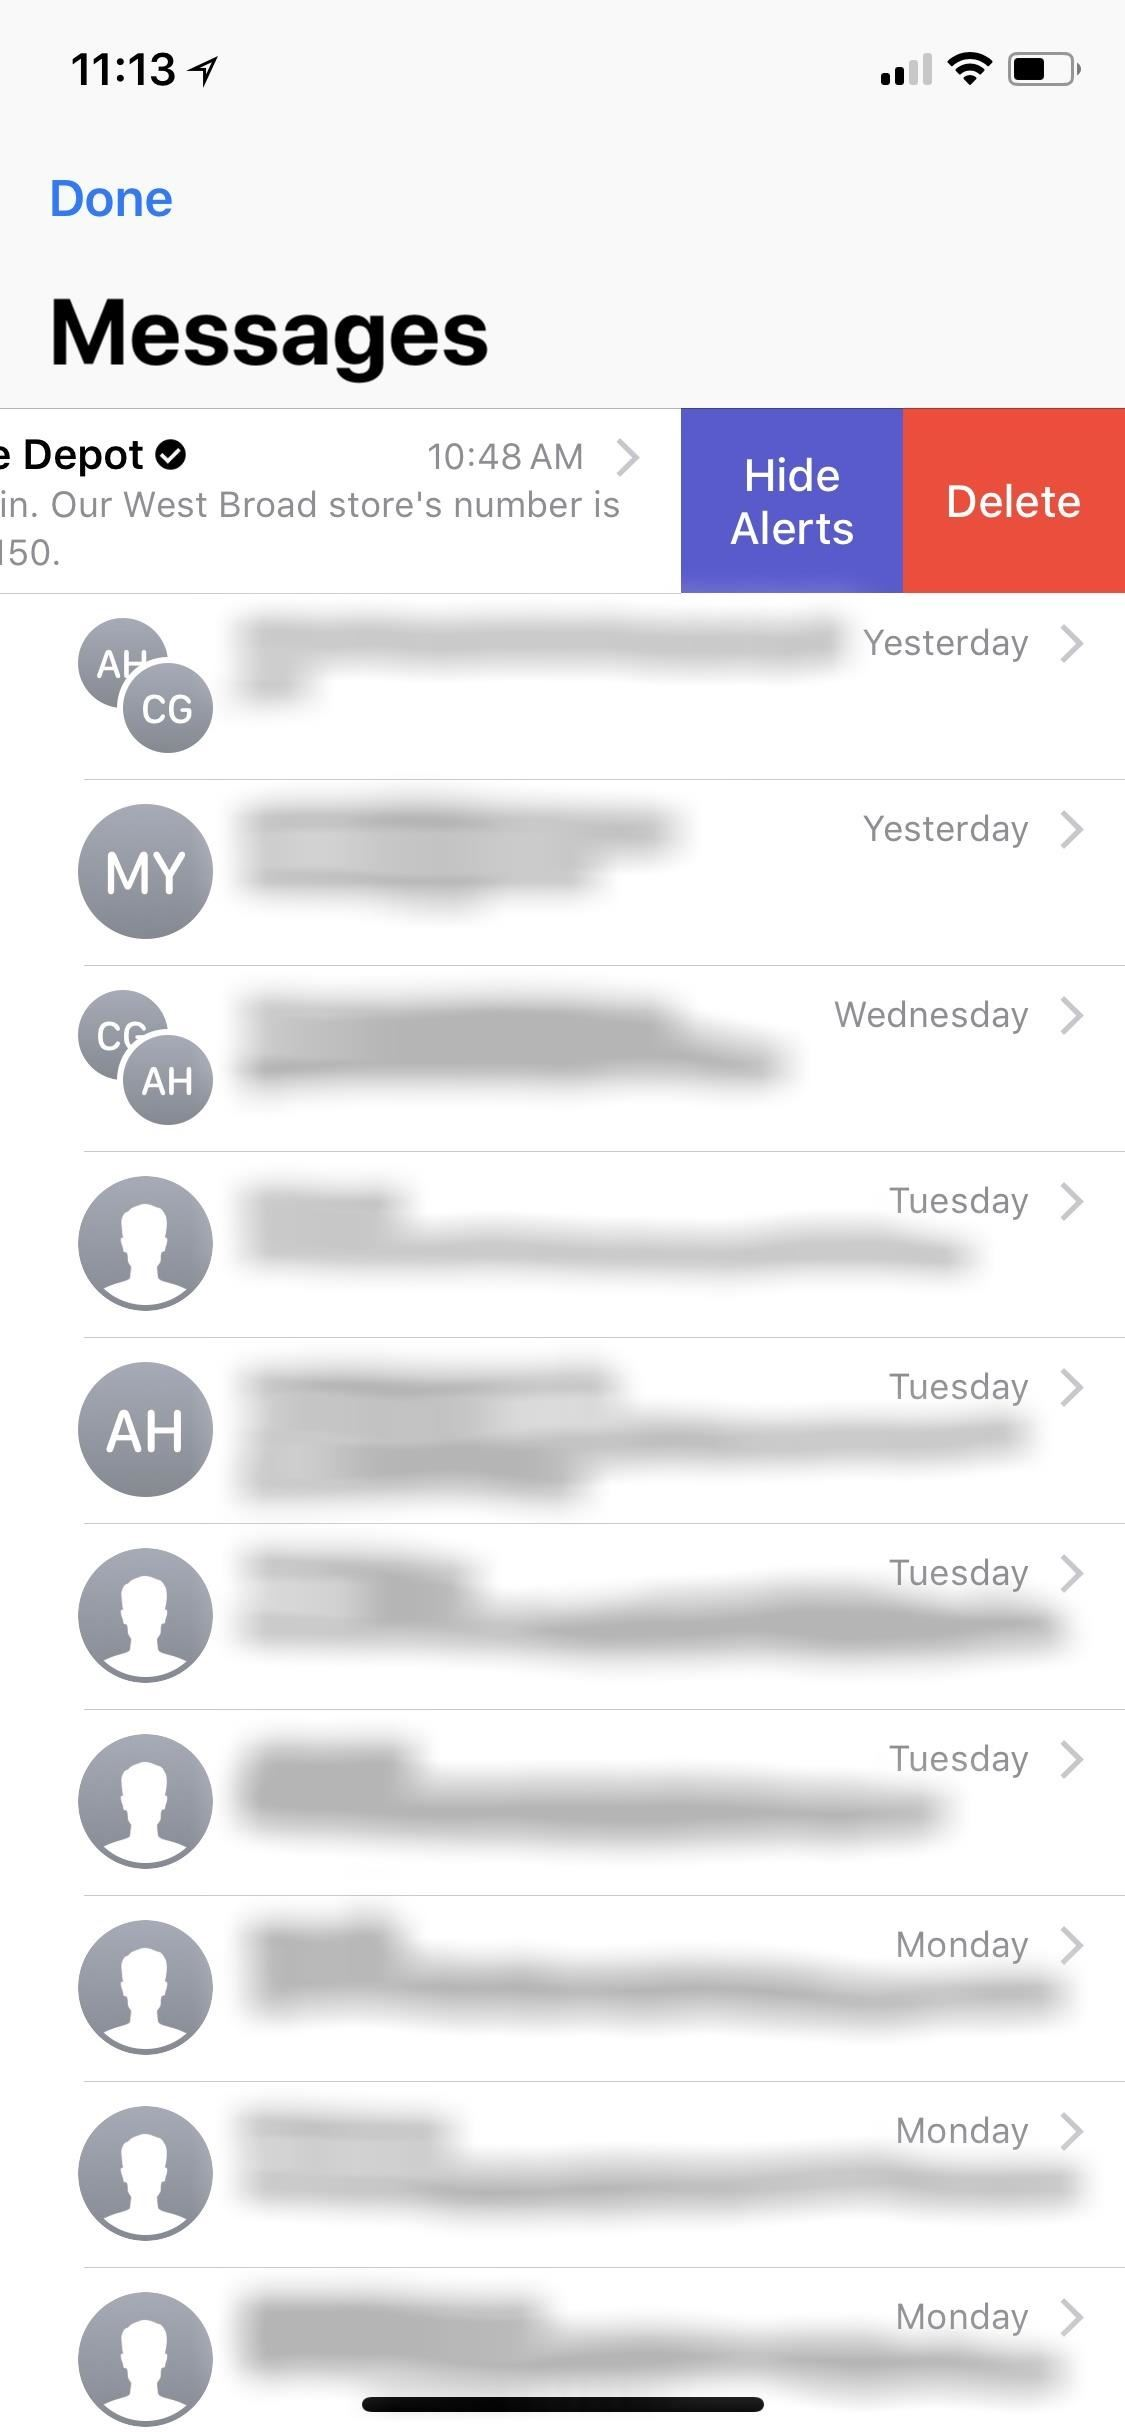 How to Use Business Chat on Your iPhone to Securely Interact with Companies via iMessage